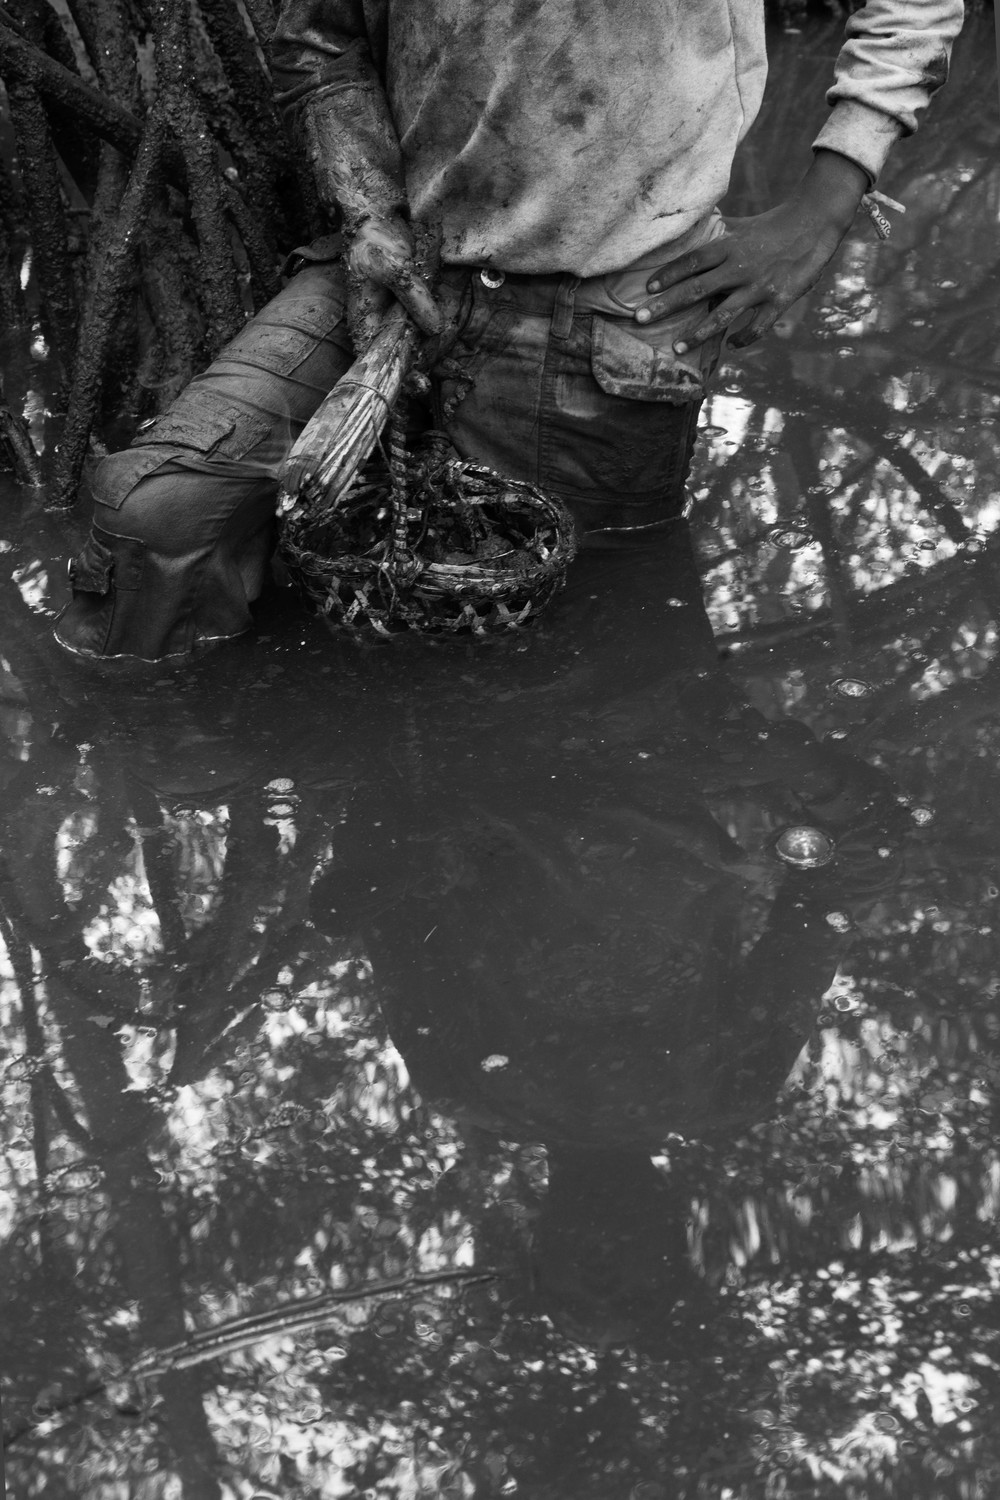 The reflection of Diego Reasco holding his basket and torch can be seen in the water of the Cayapas Mataje Mangrove Reserve. Work days in the mangrove are determined by the ebb and flow of the water. 2014.